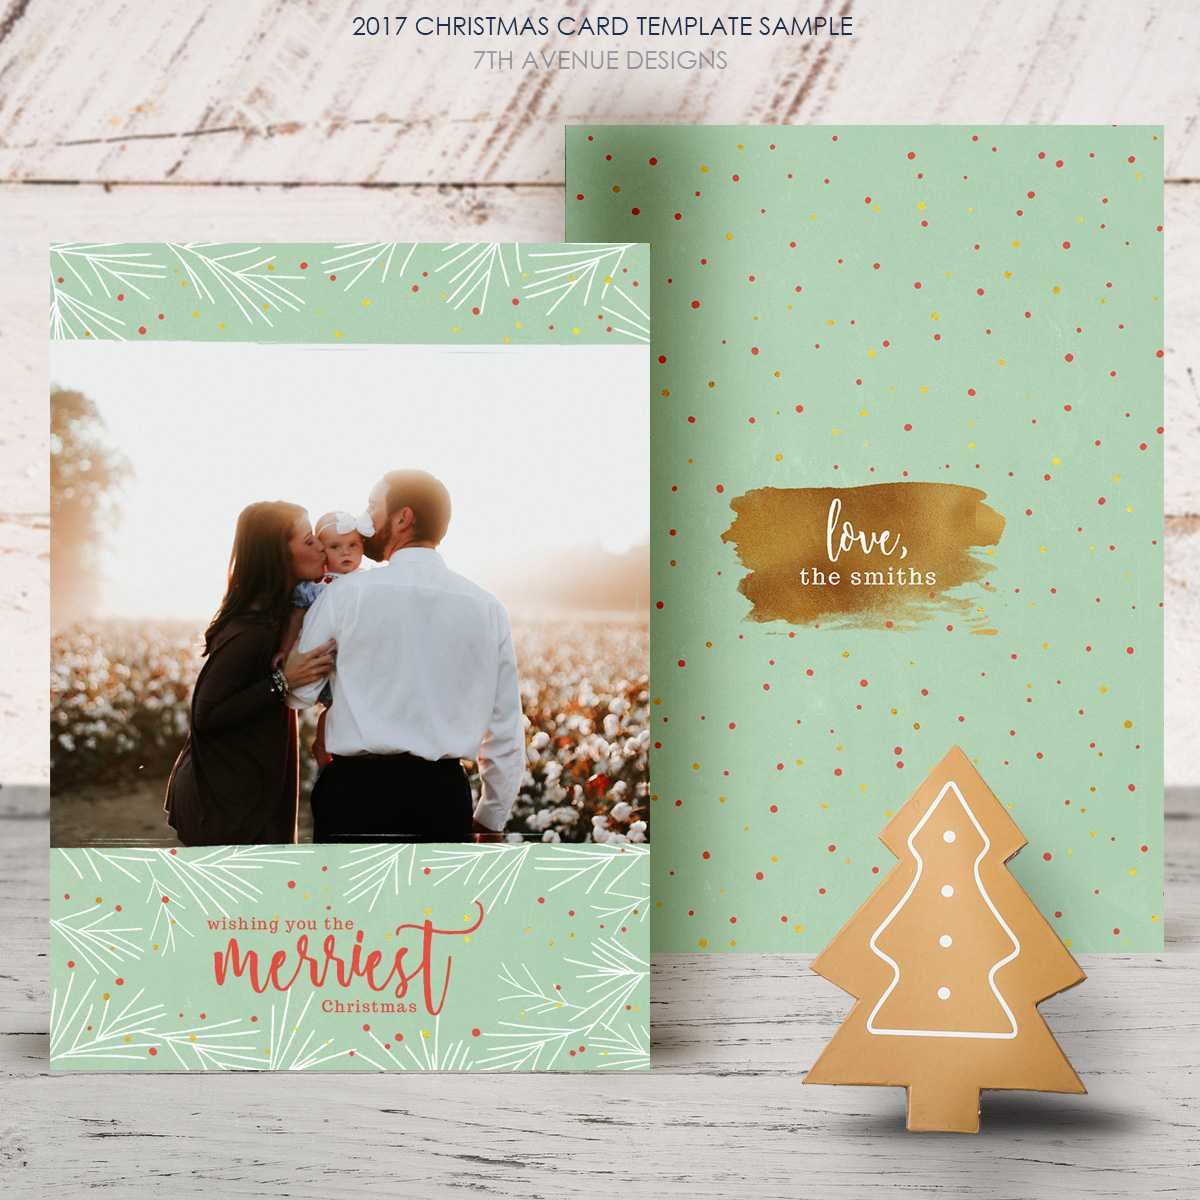 Free Christmas Card 2017 [Freecc2017] – It's Free Pertaining To Free Christmas Card Templates For Photographers